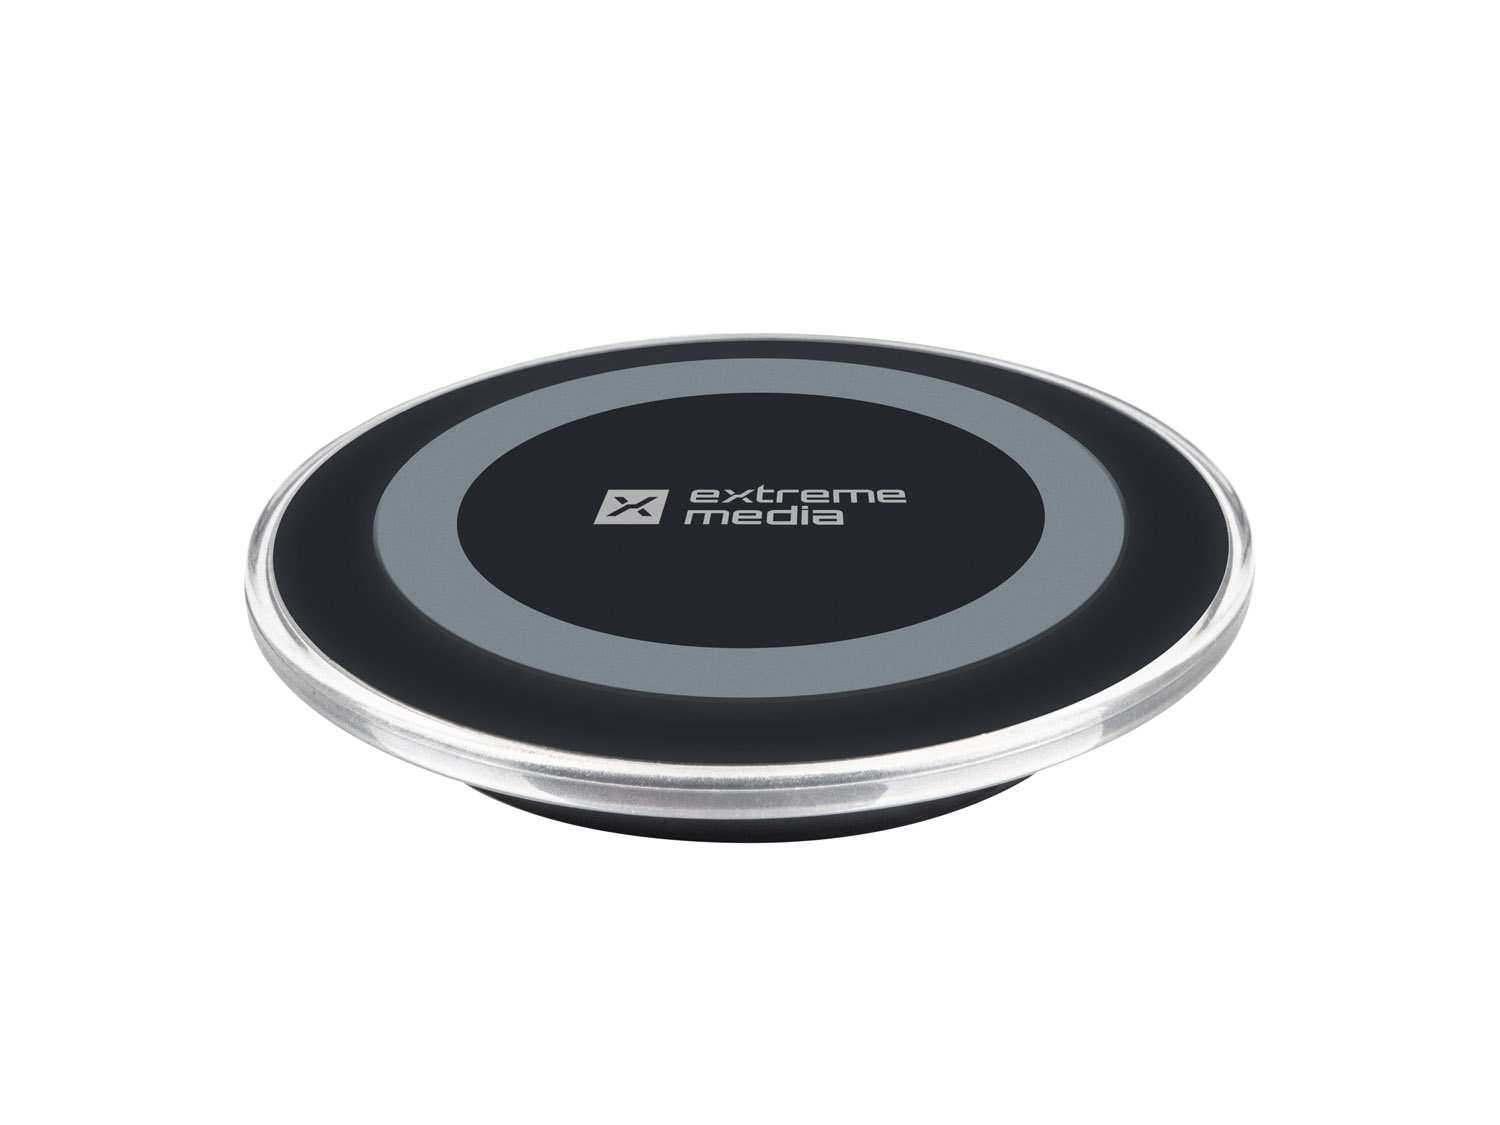 EXTREME MEDIA WIRELESS CHARGER NUC-1170 5V/1A BLACK